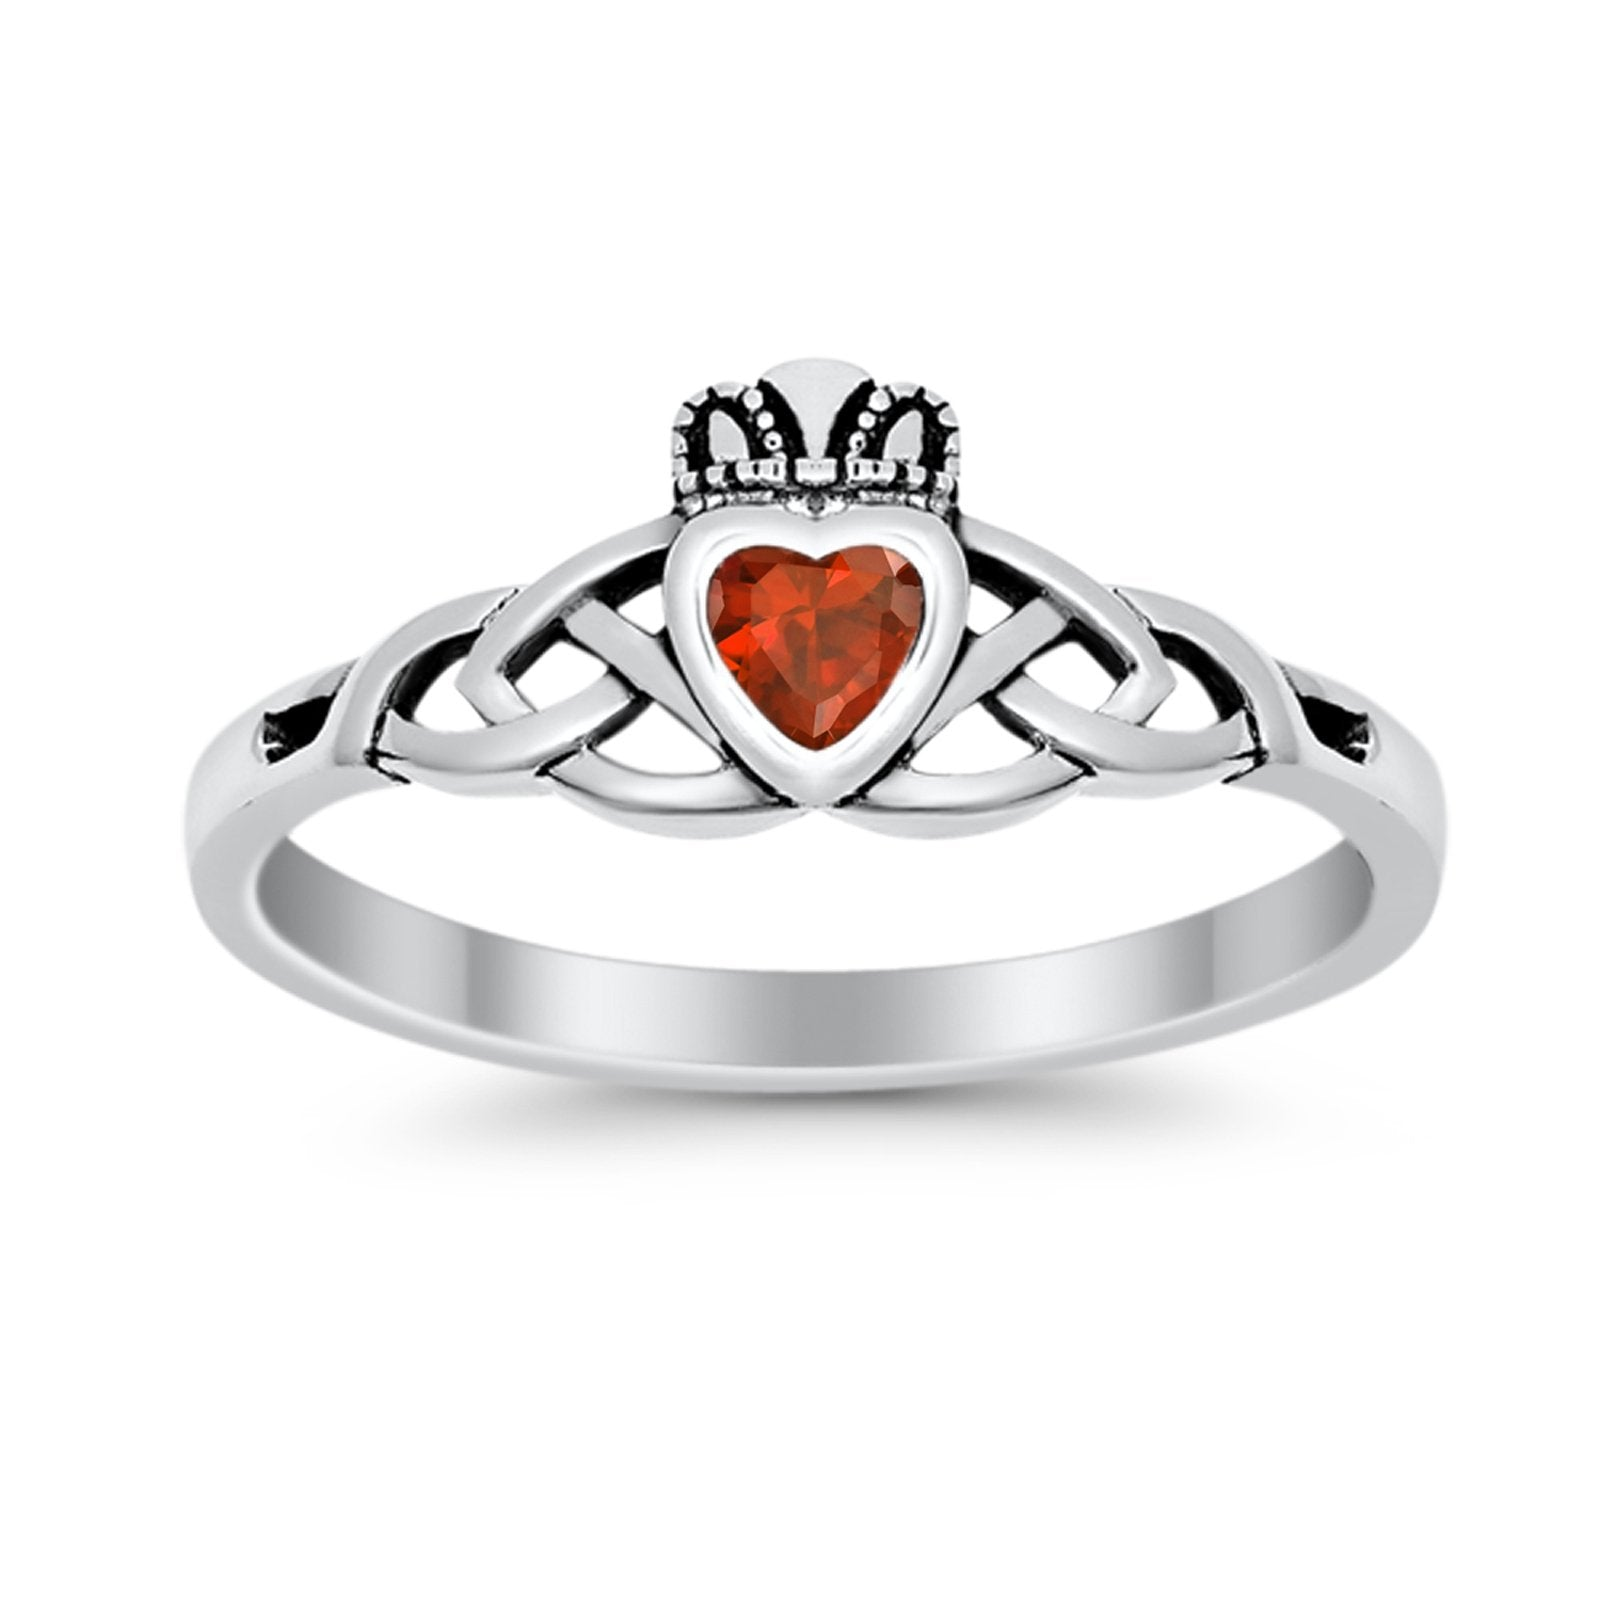 Celtic Knot Claddagh Ring Simulated Cubic Zirconia 925 Sterling Silver